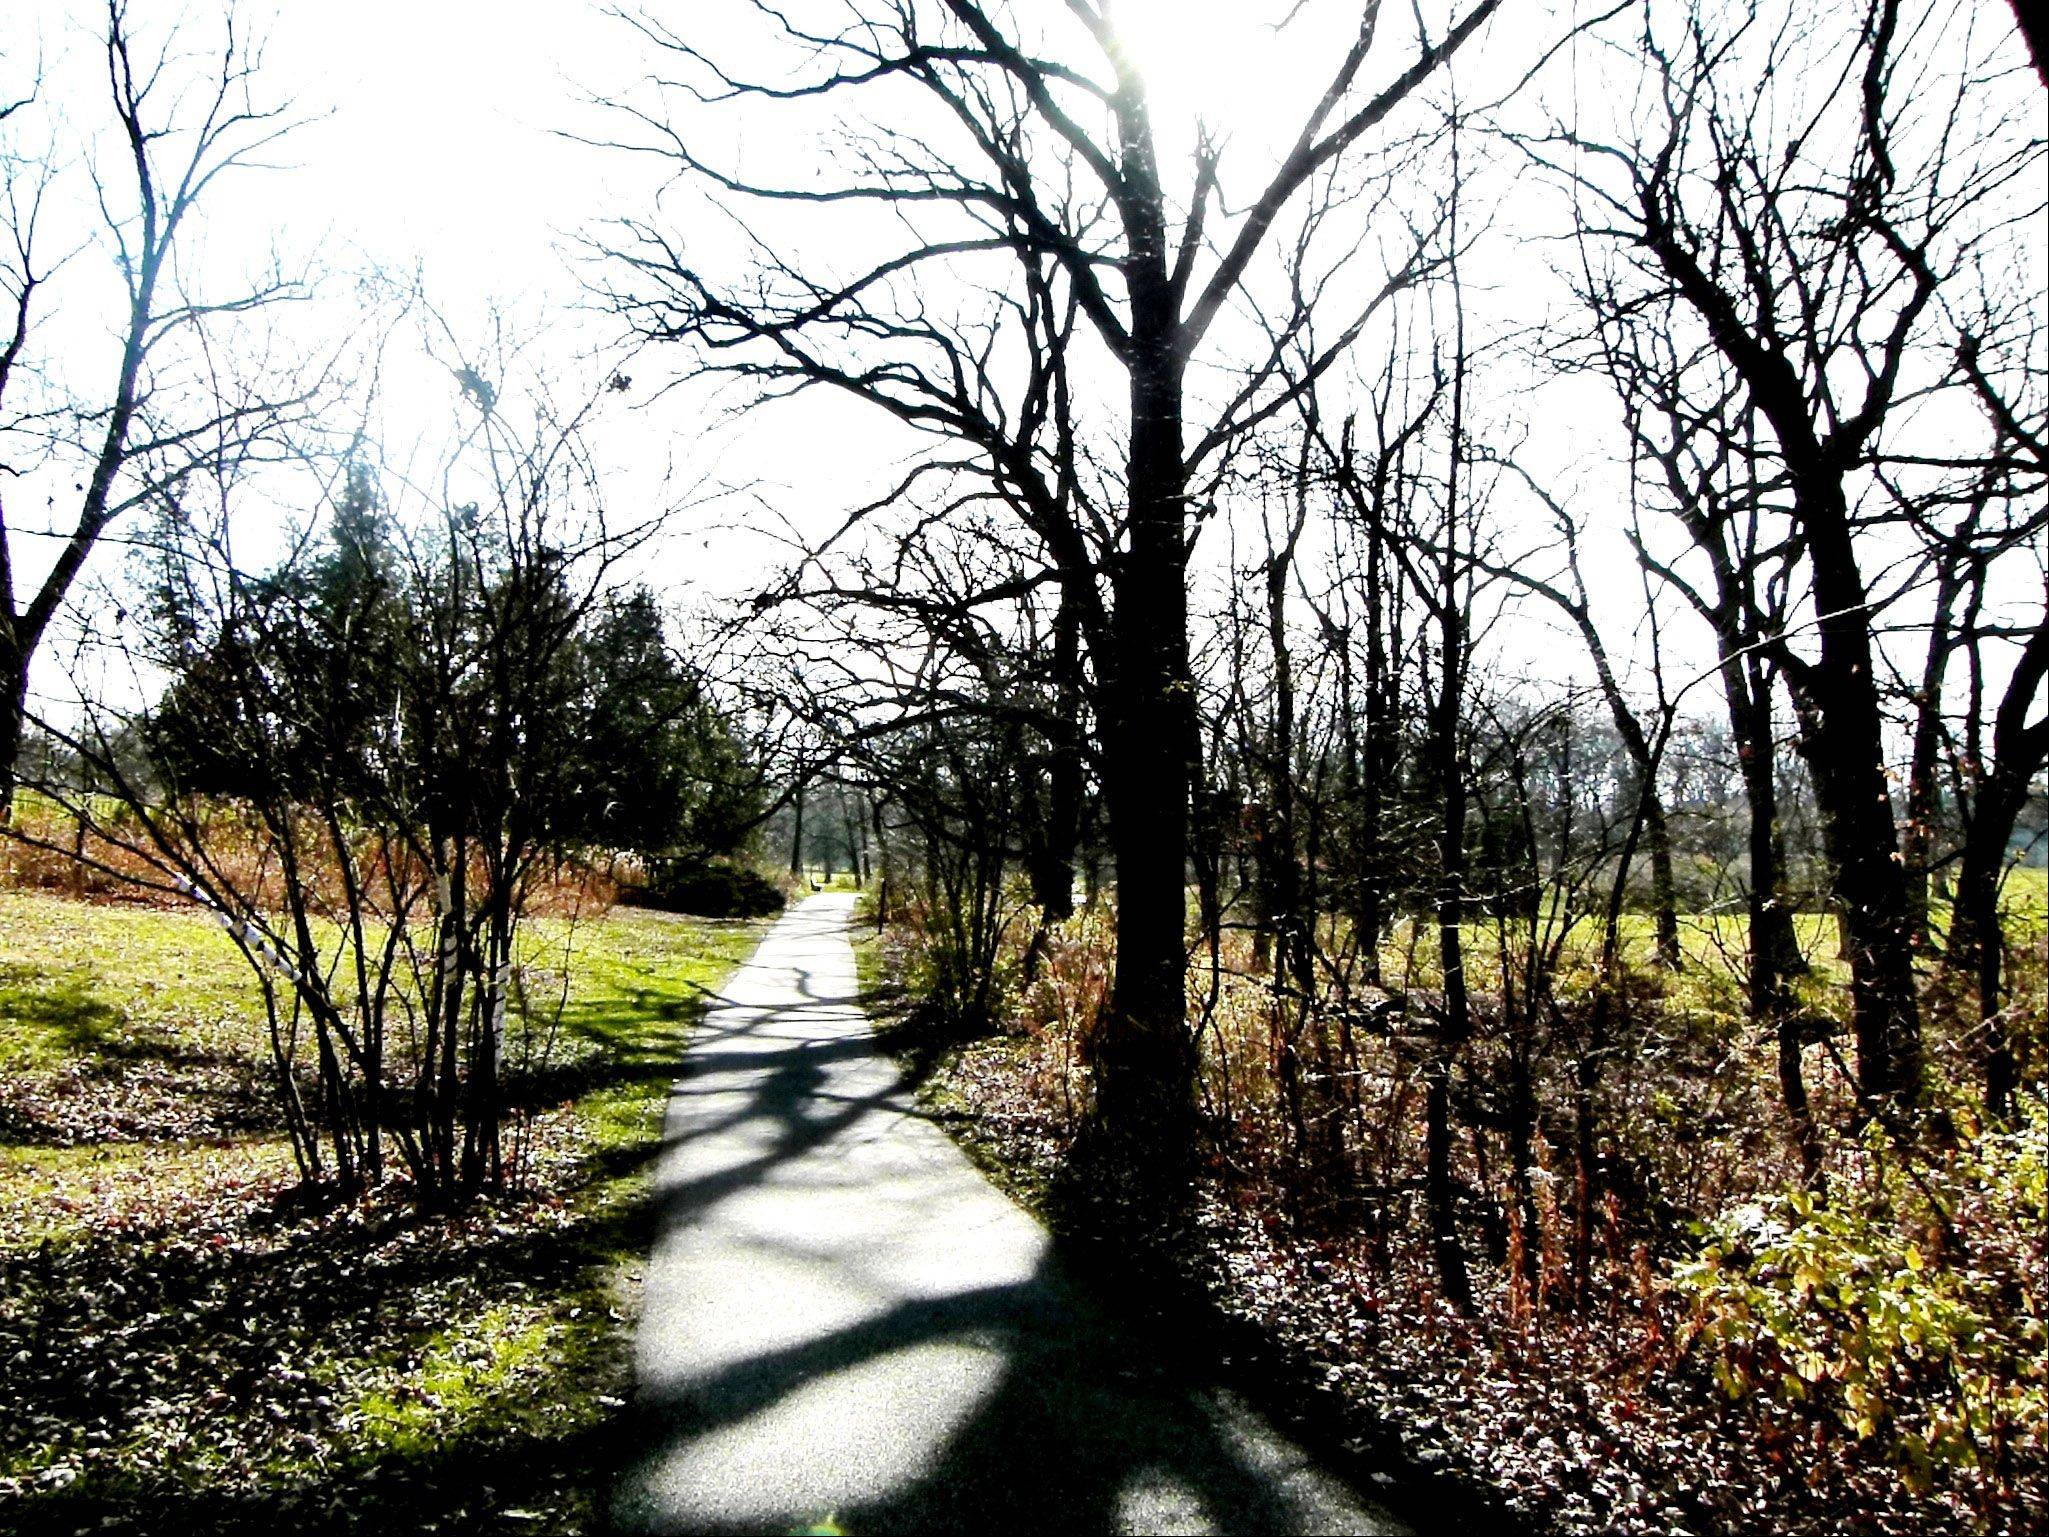 Starkly bare trees on the Joy Path at Morton Arboretum indicate winter is on the way.